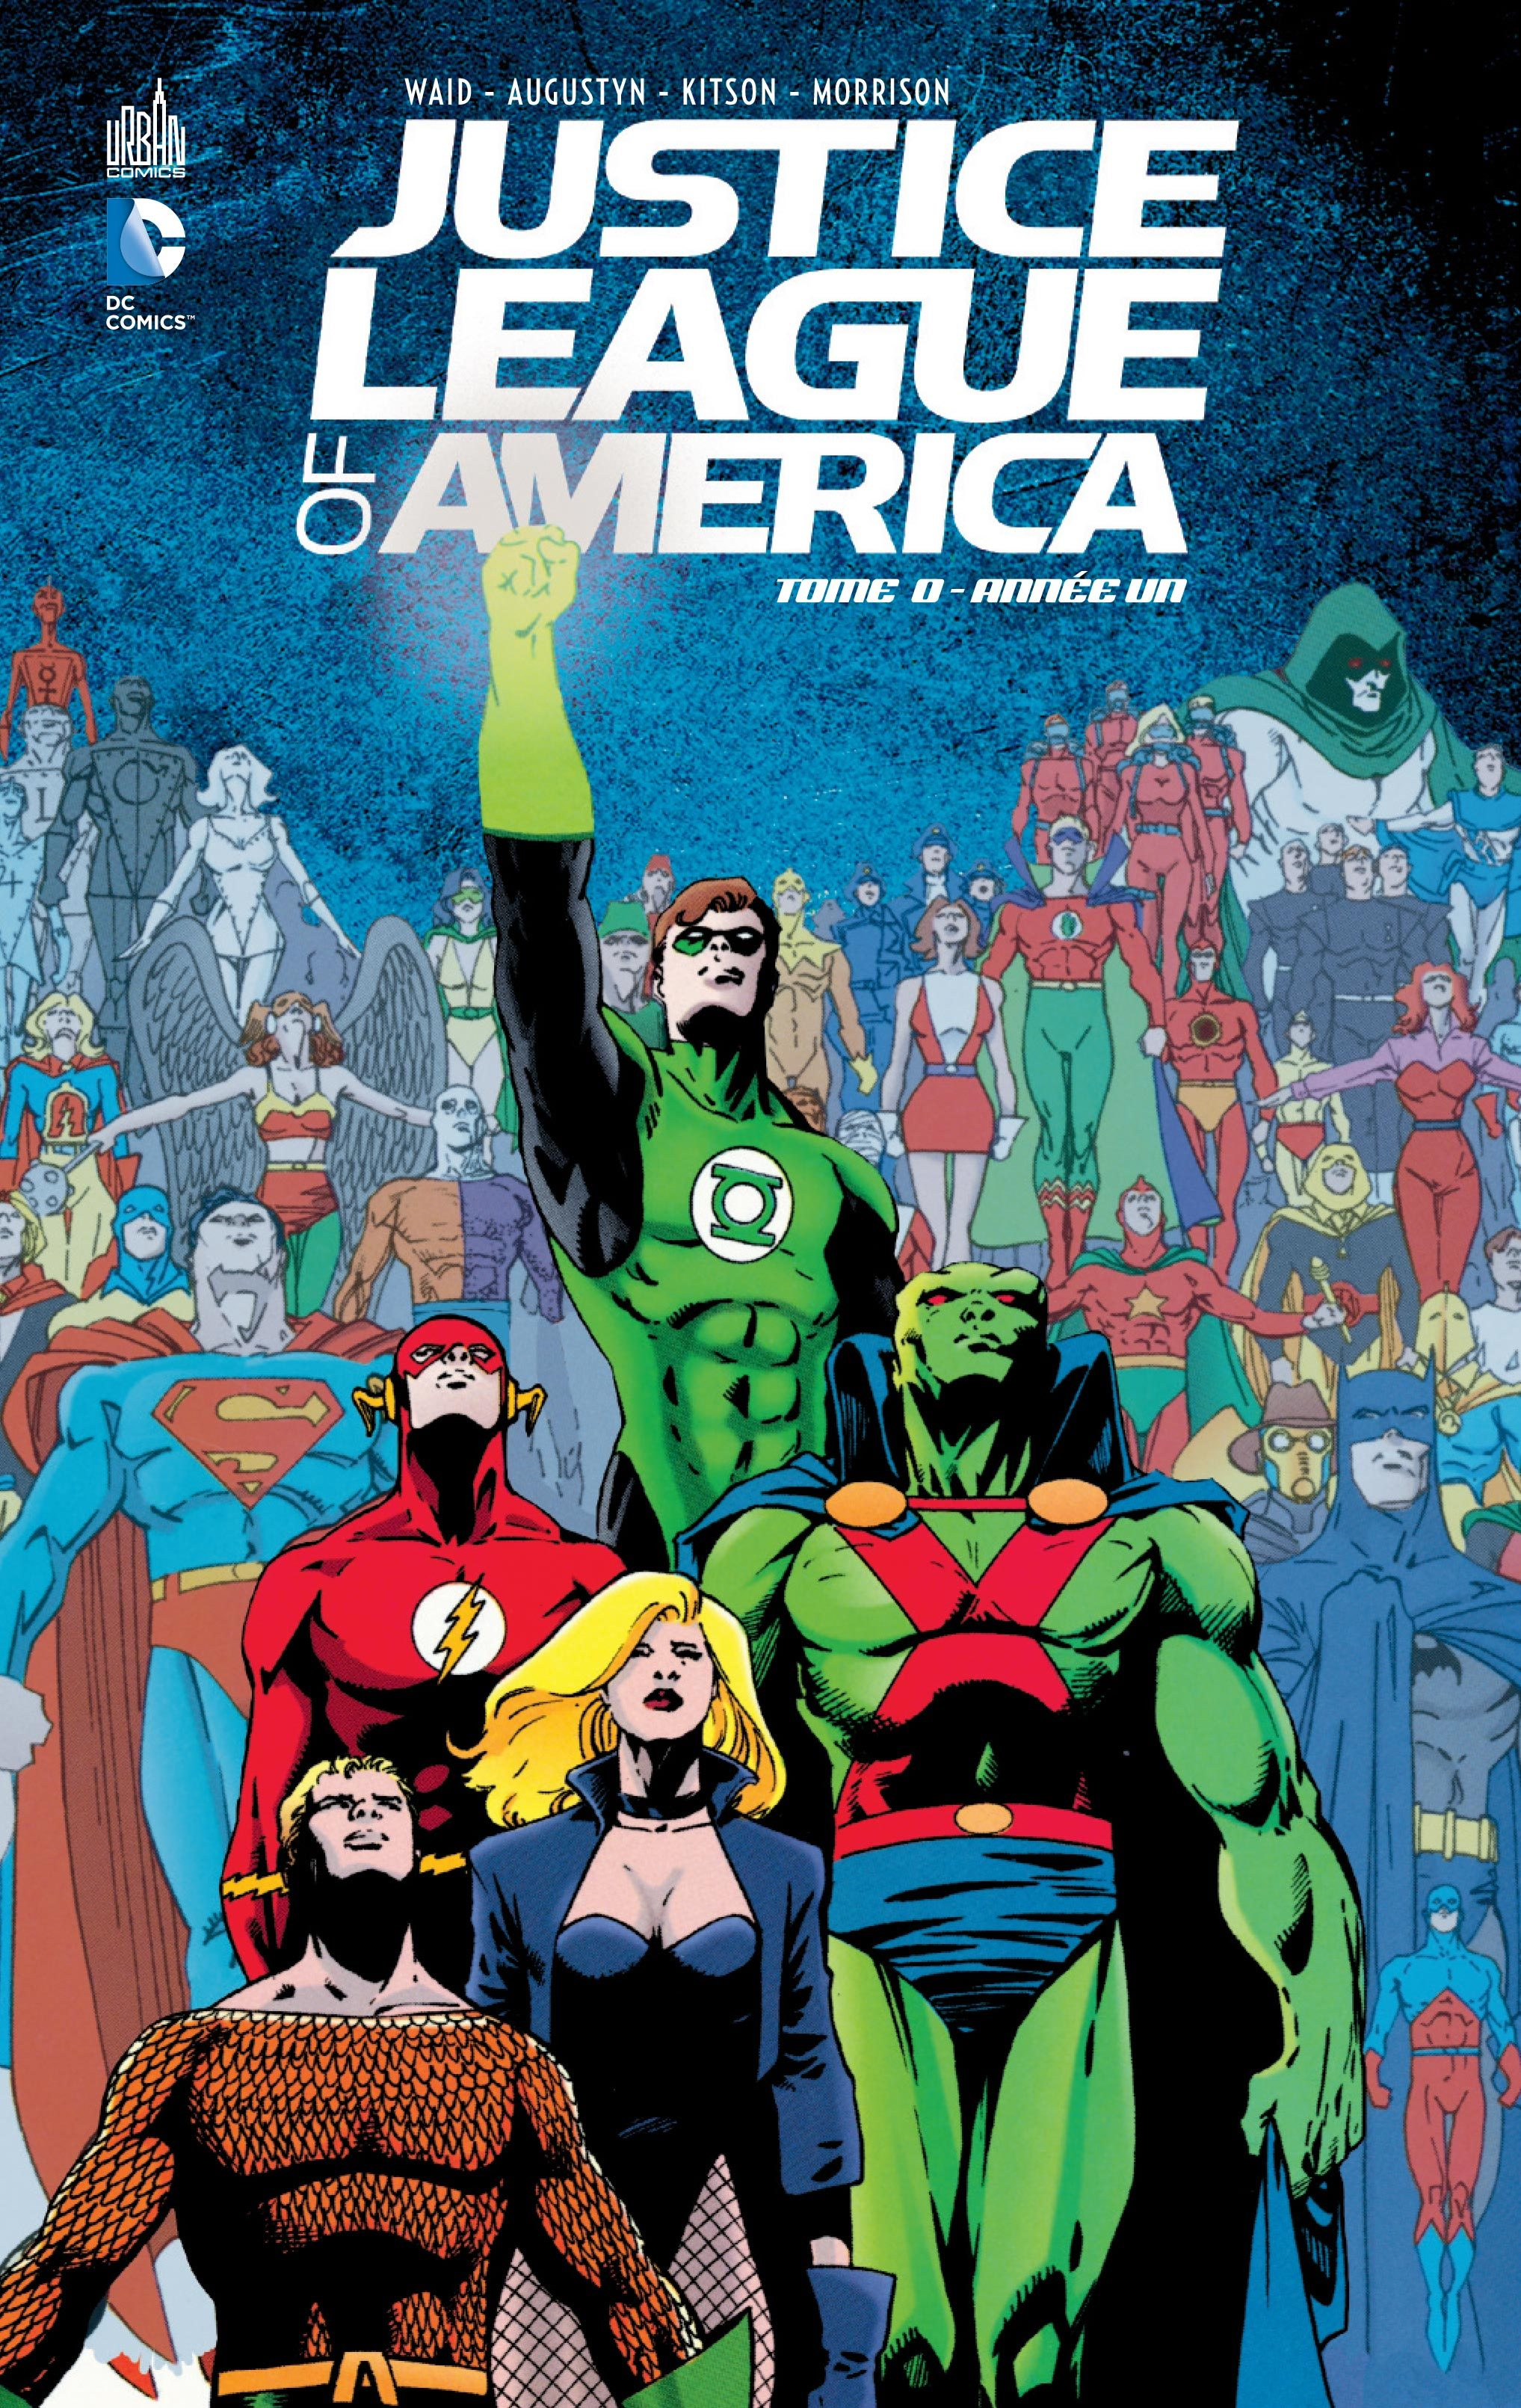 DC CLASSIQUES - JUSTICE LEAGUE OF AMERICA TOME 0